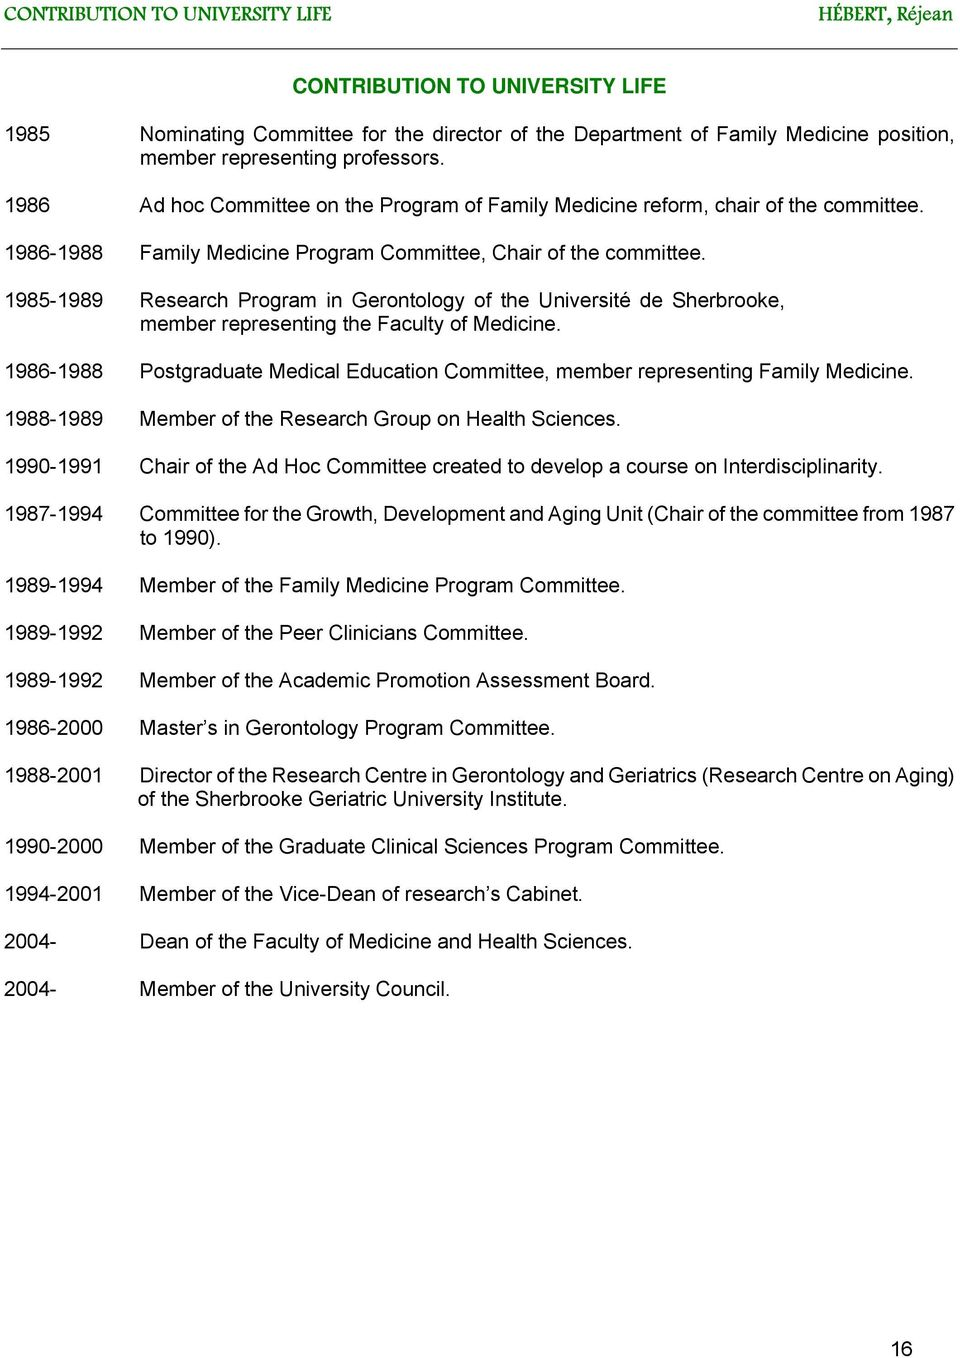 1985-1989 Research Program in Gerontology of the Université de Sherbrooke, member representing the Faculty of Medicine.